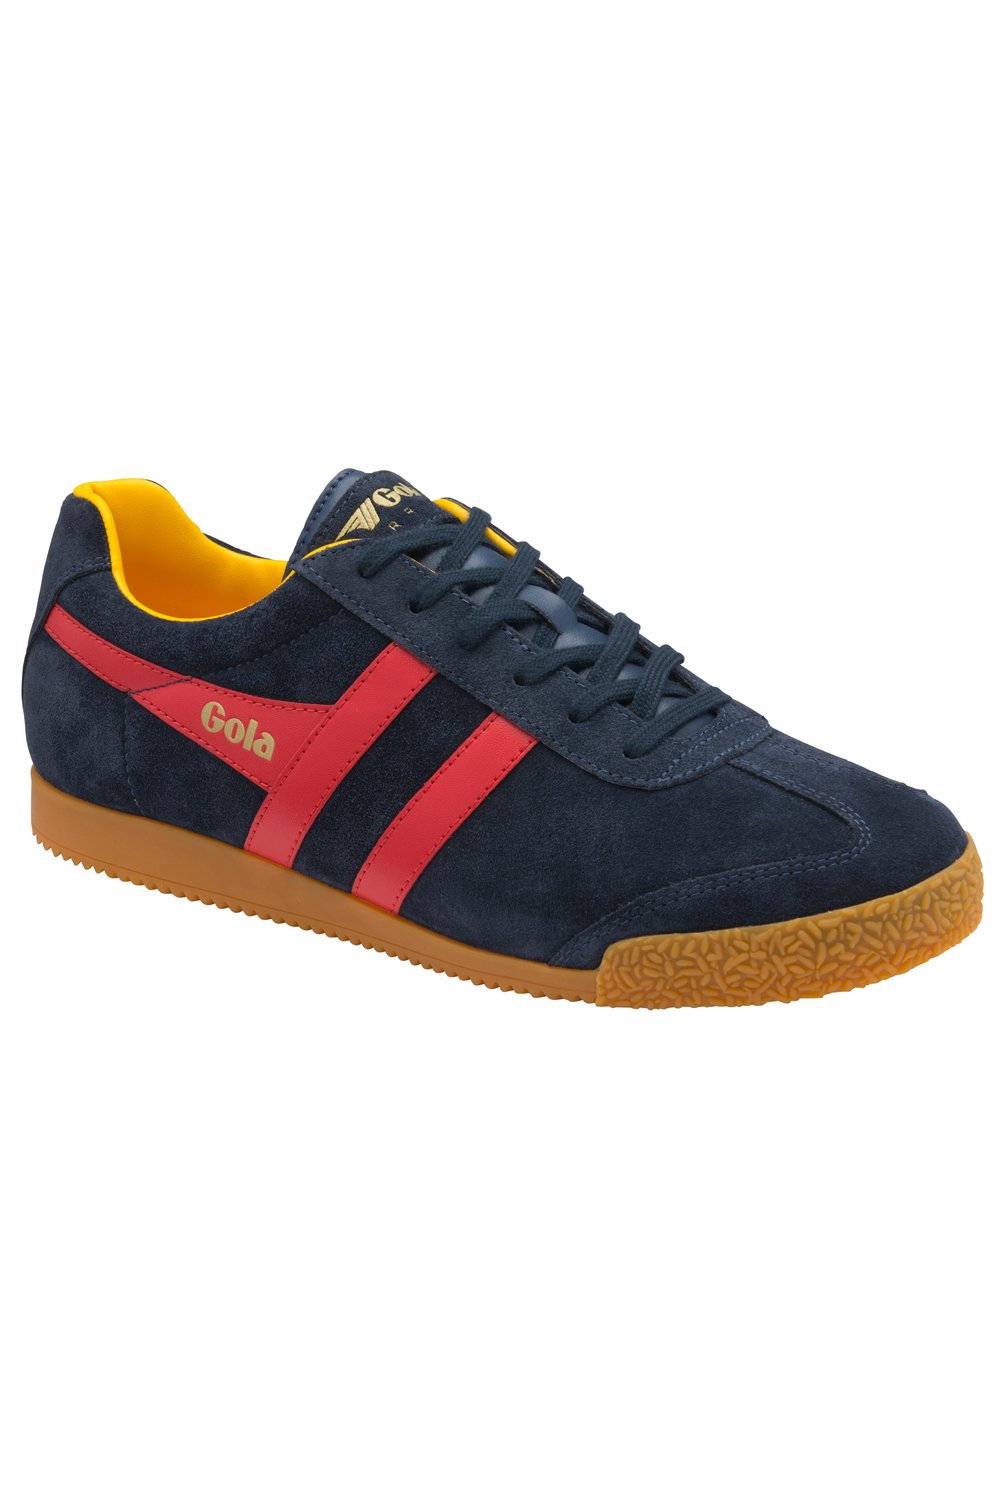 thumbnail 20 - Gola Harrier Suede Classic Vintage Lace-Up Sneakers Mens Trainers Low Top Shoes